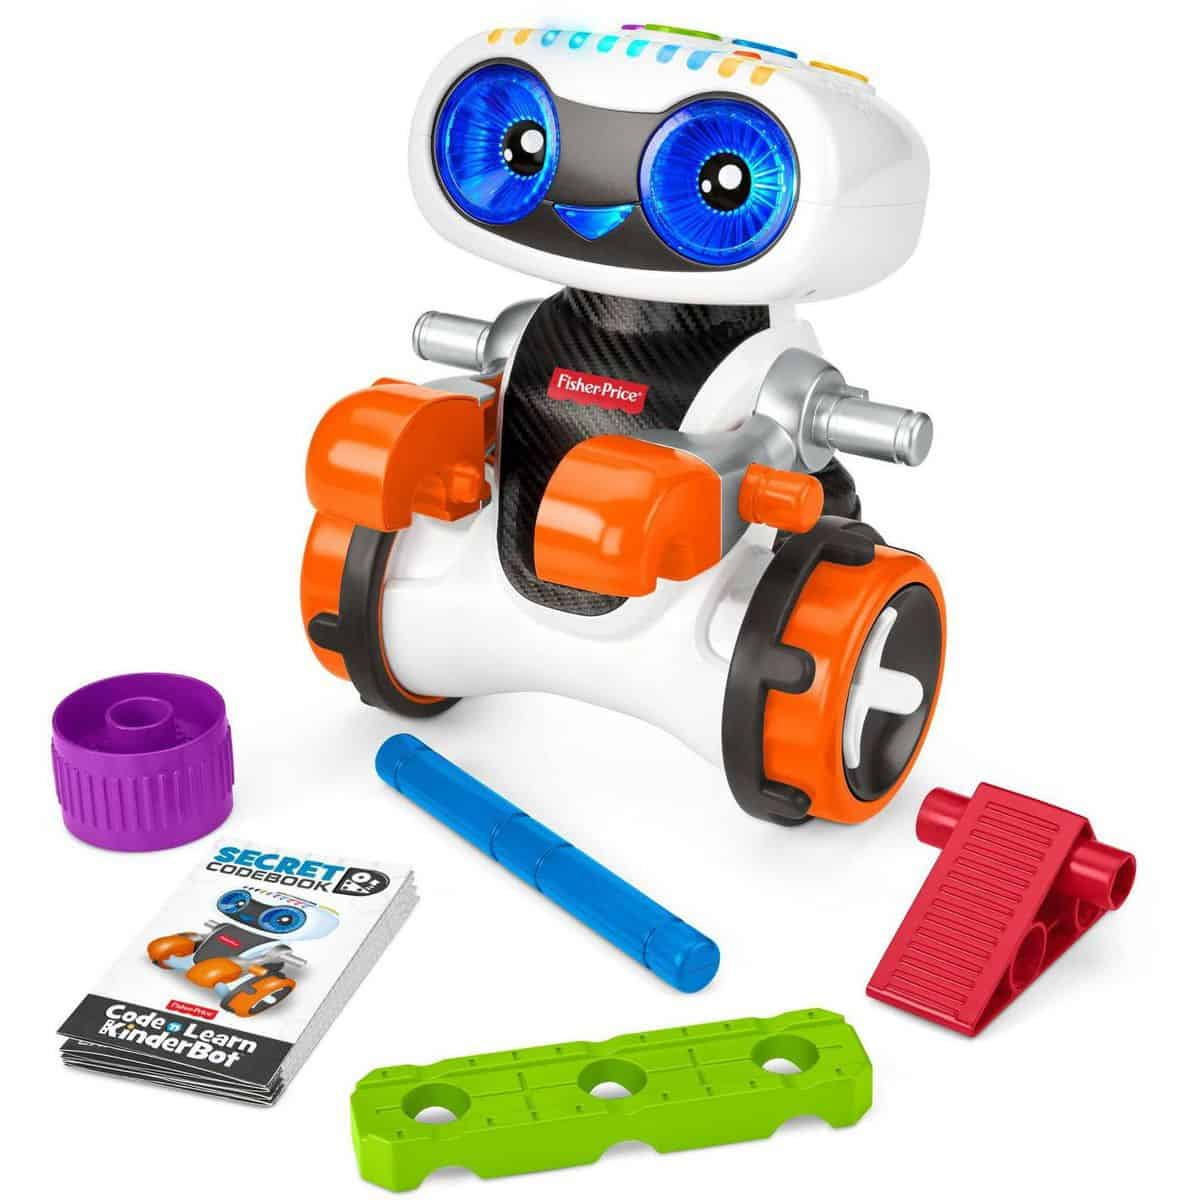 Fisher Price Code N' Learn Robot